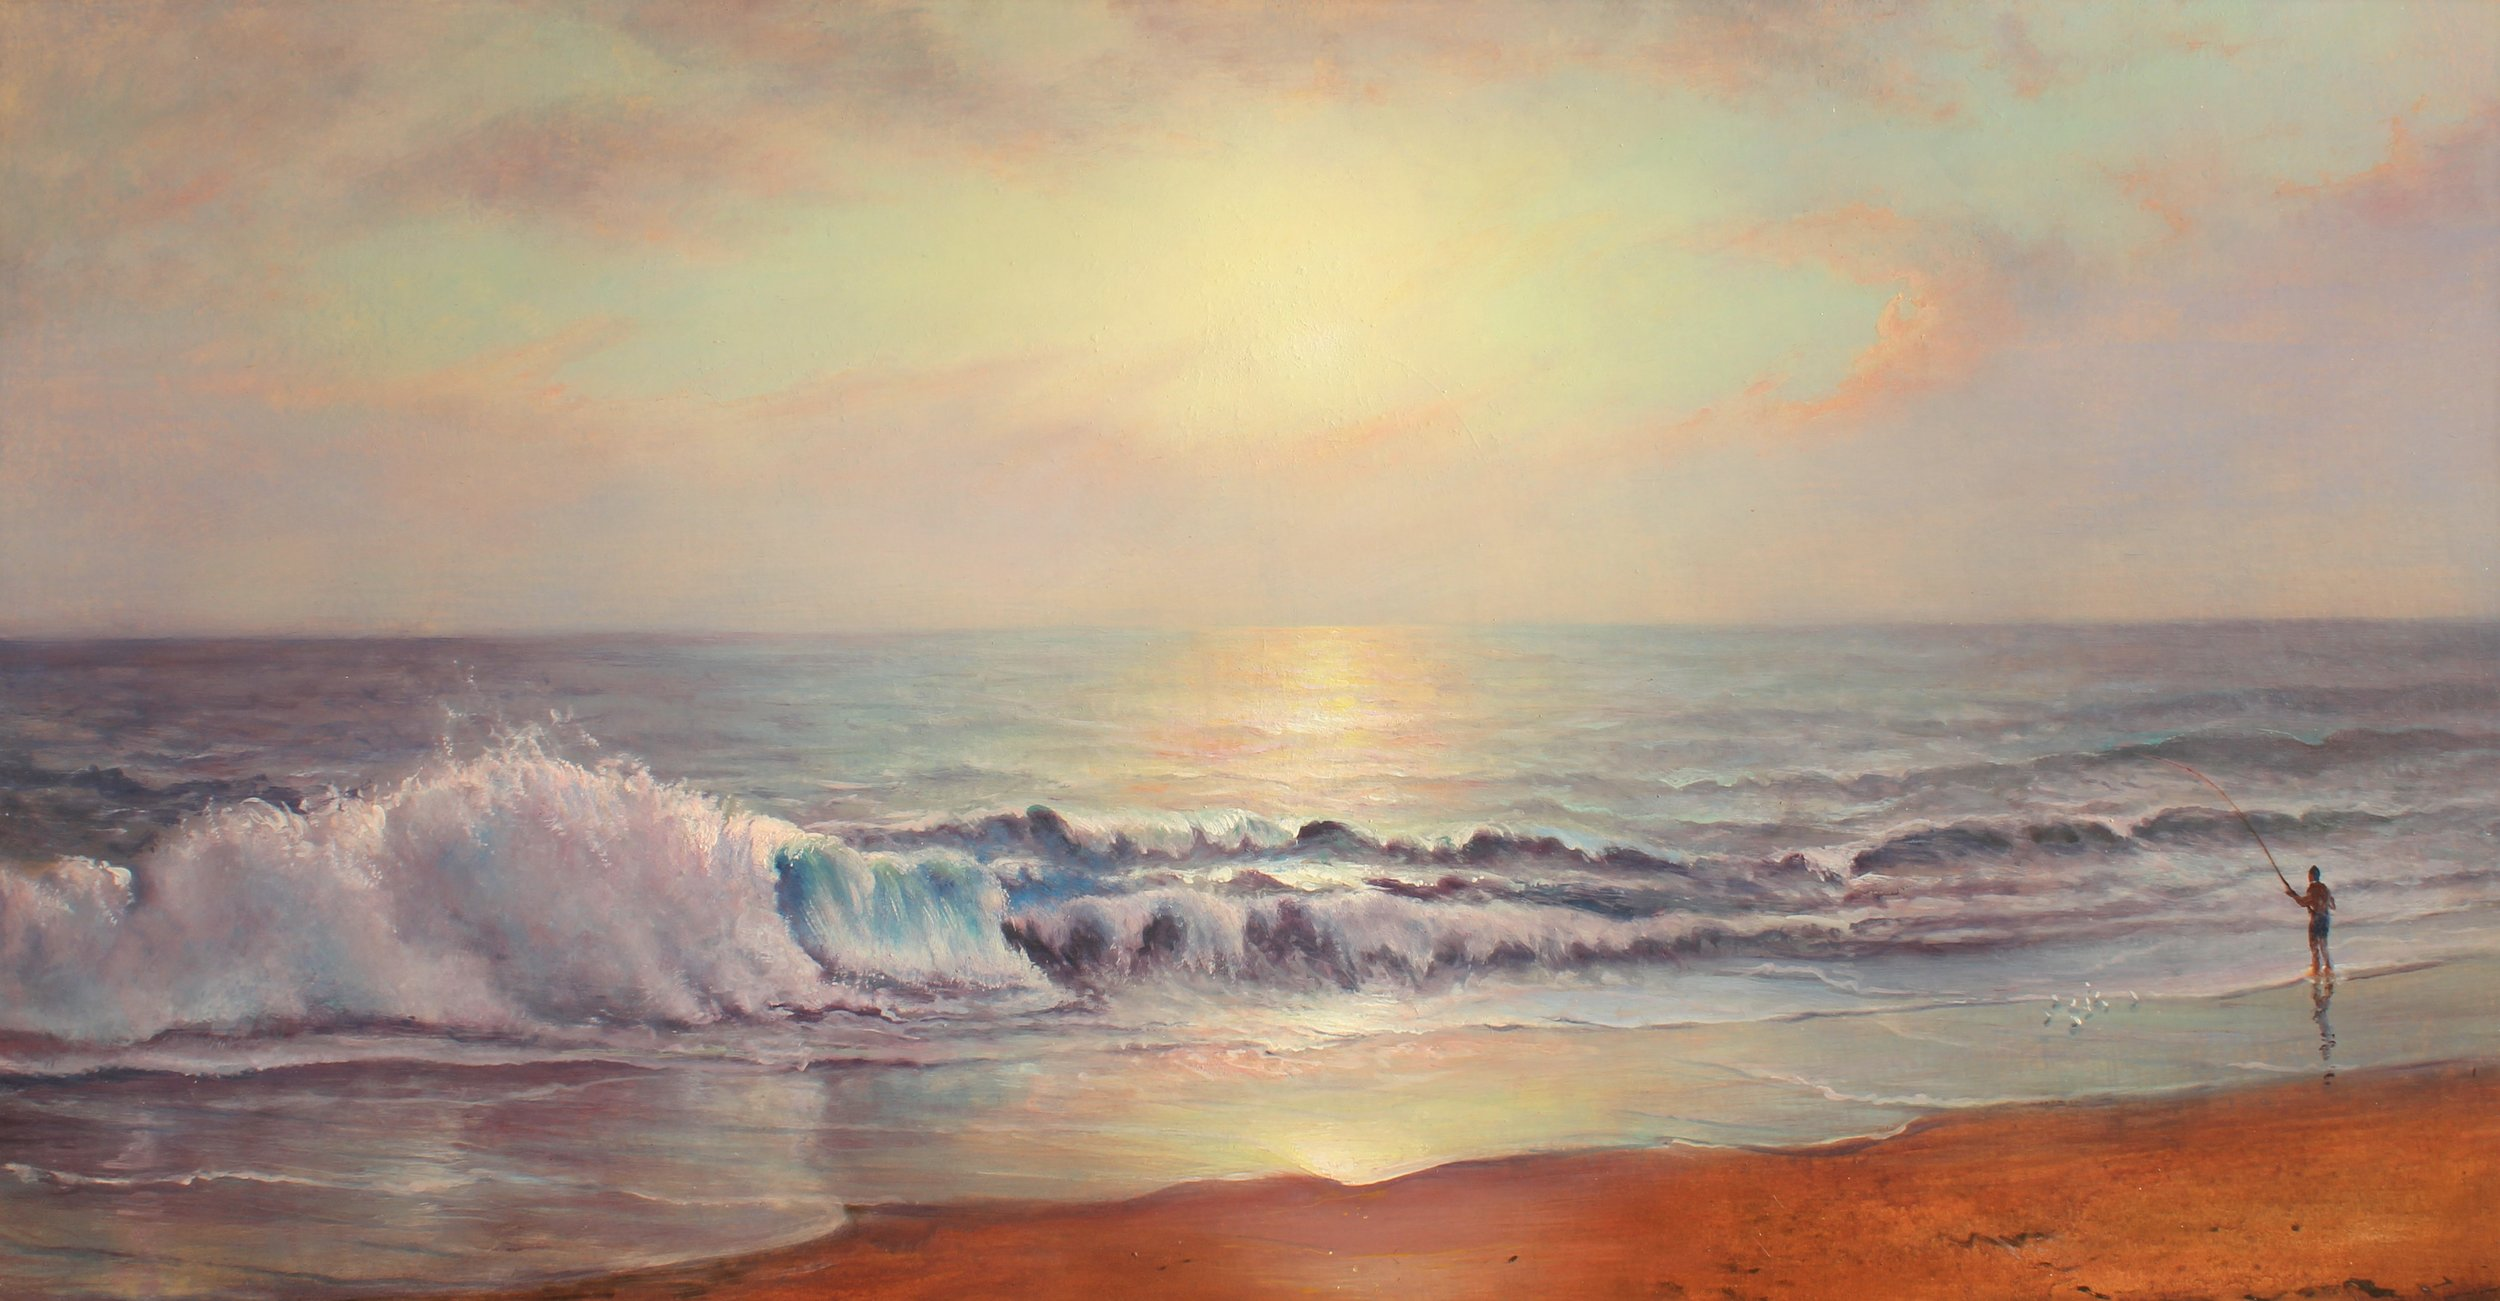 PETER ARGUIMBAU    The Wave    40 x 78 inches